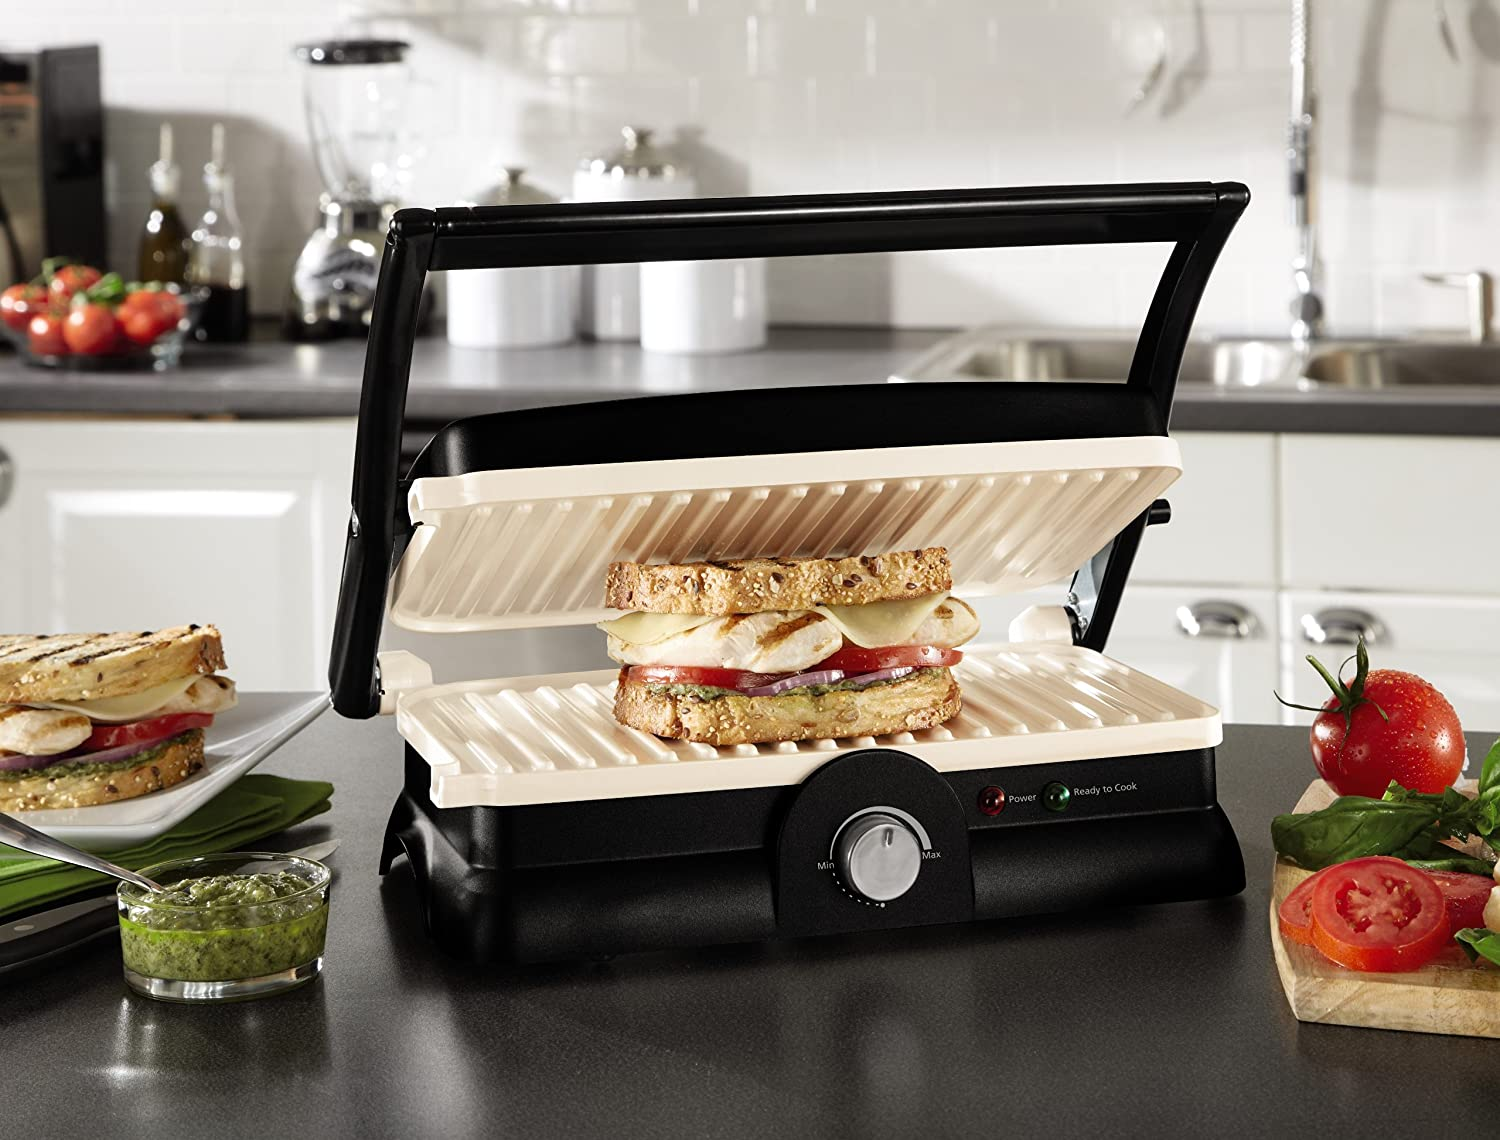 electric grill sandwich panini maker griddle warmer. Black Bedroom Furniture Sets. Home Design Ideas